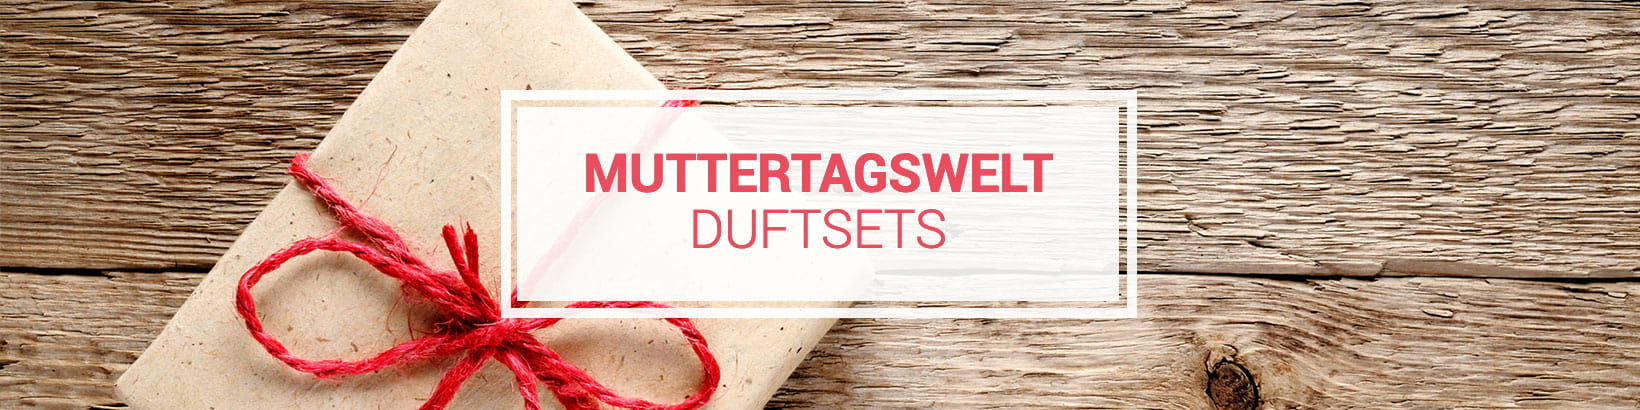 Visual-1640x410-Muttertag-Duftsets